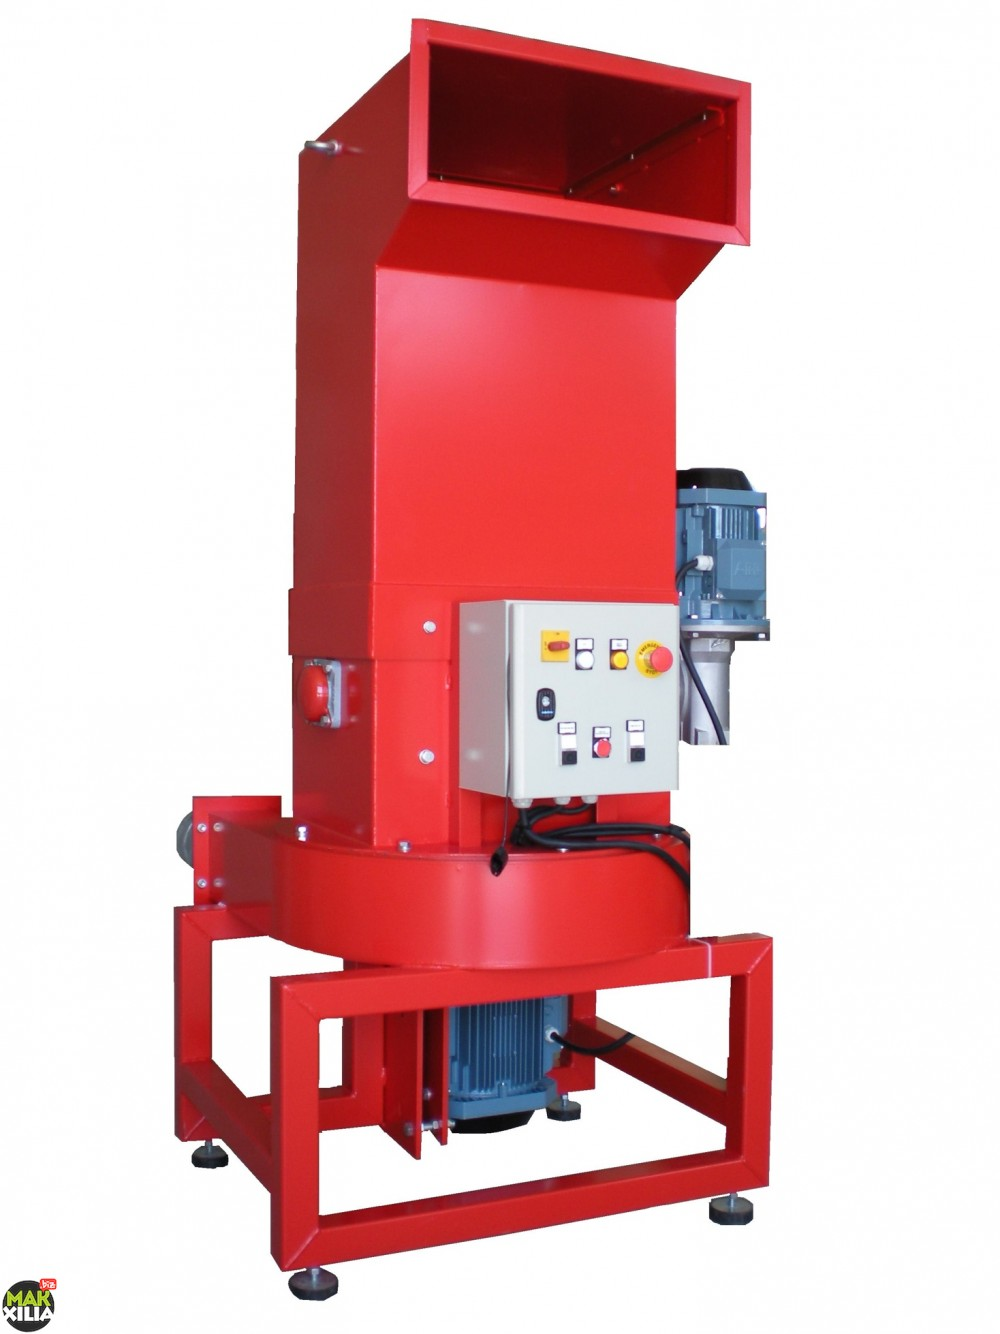 POLYSTYRENE MILL SHREDDING MACHINE FOR POLYSTYRENE WASTE EPS